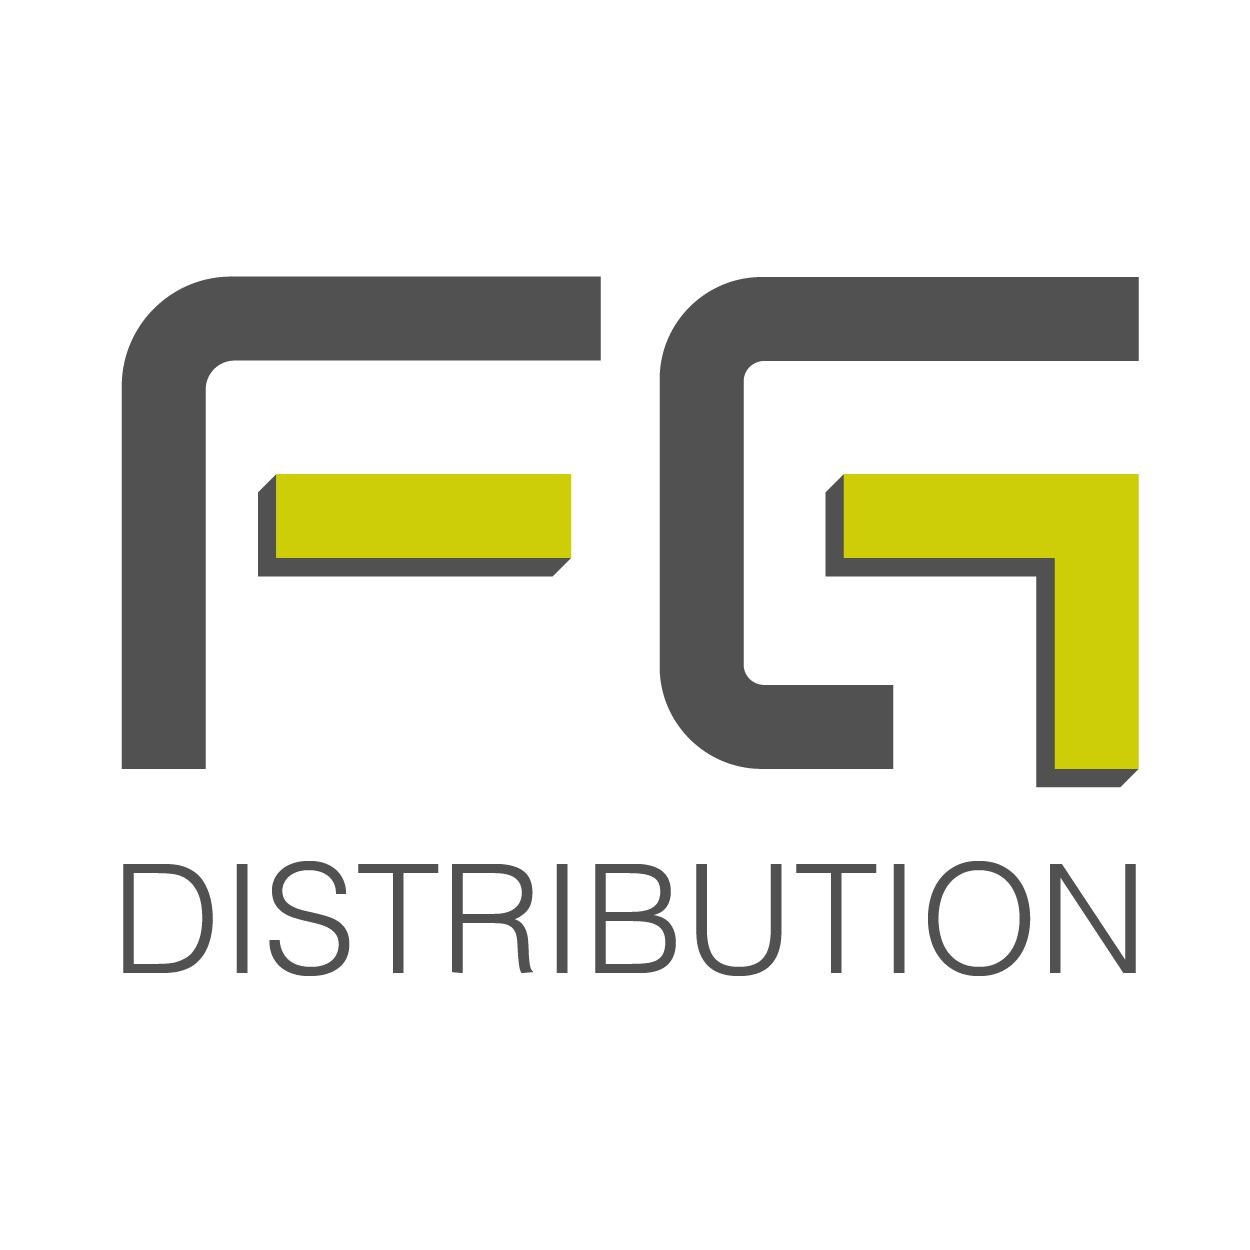 FG Distribution